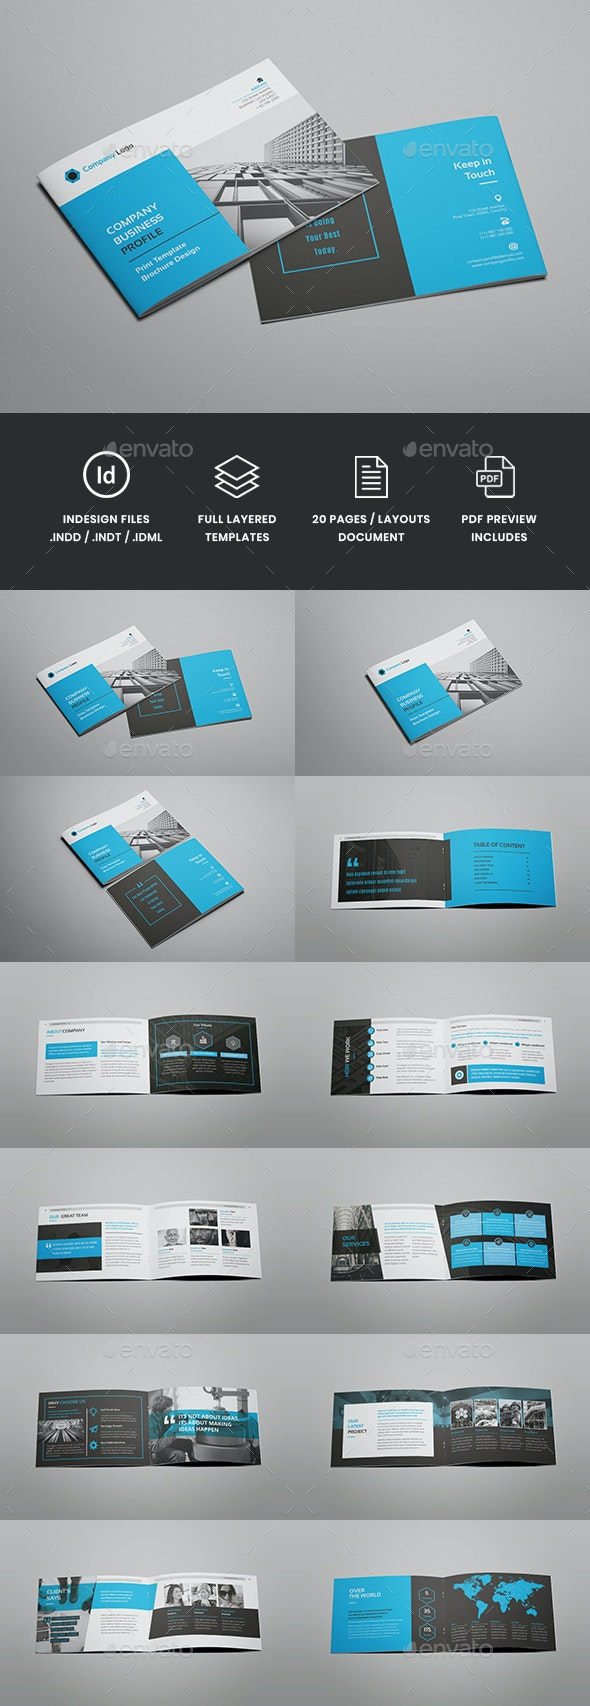 Voyd - Company Profile Bifold Brochure Template - Corporate Brochures